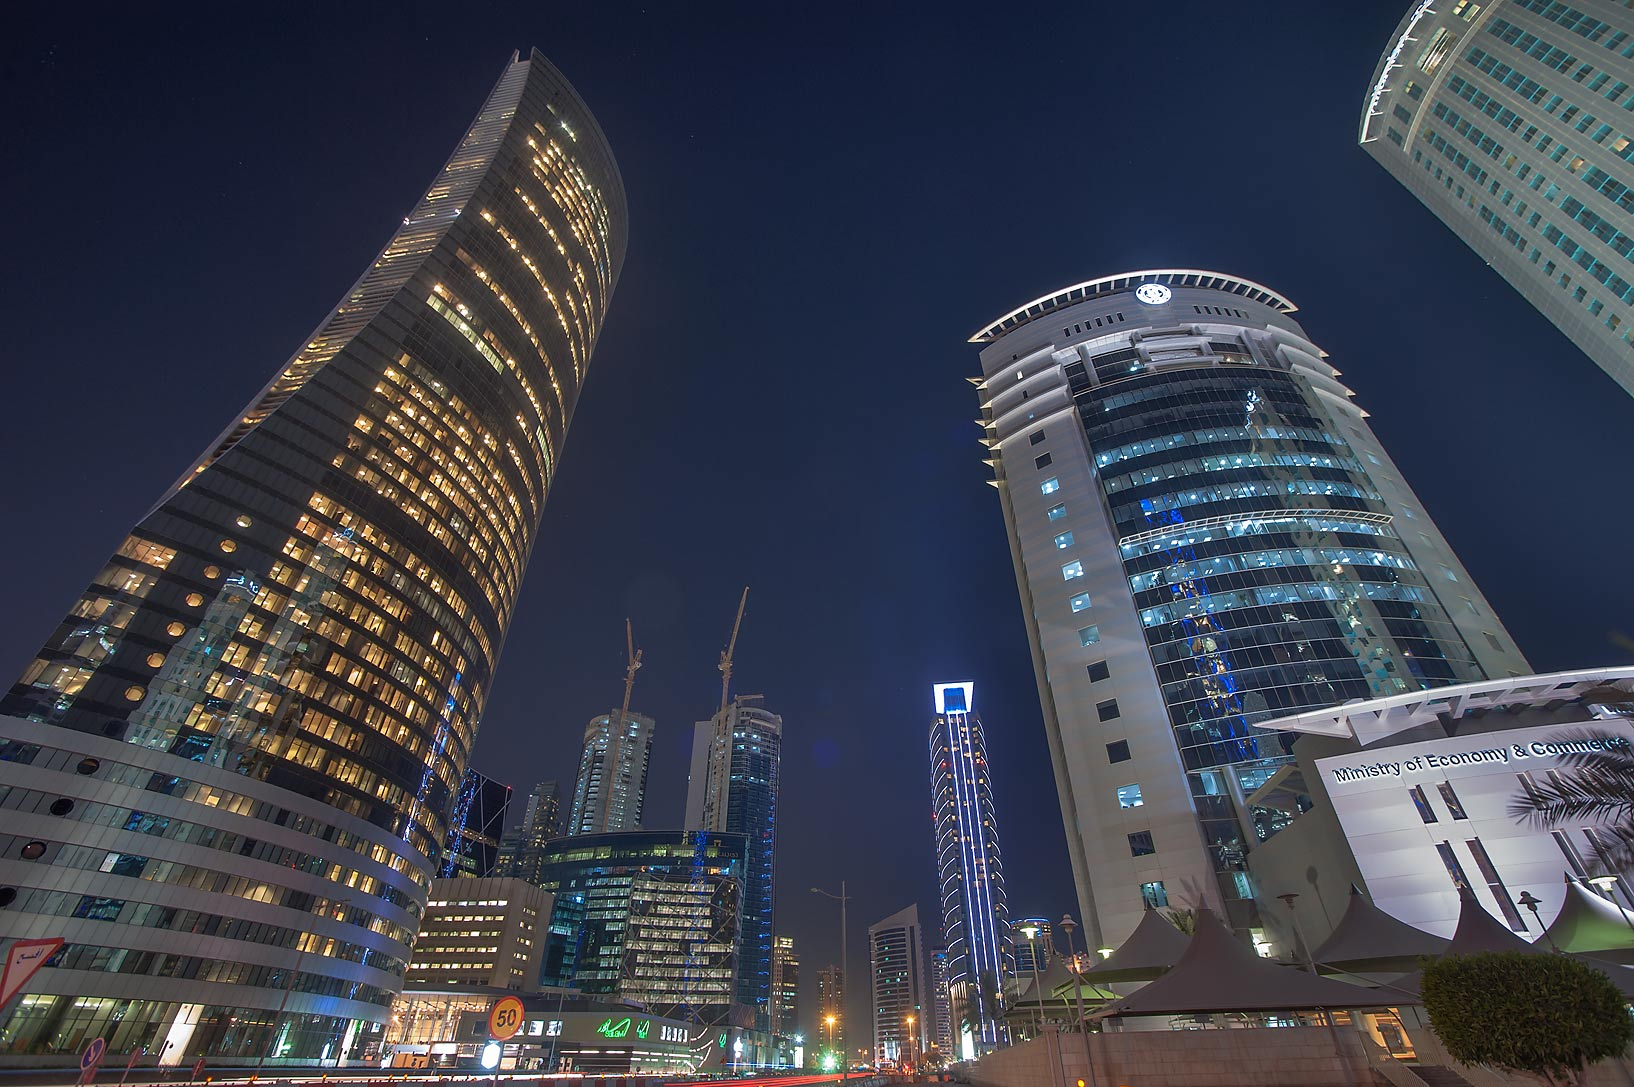 Navigation and Ministry of Commerce towers in West Bay. Doha, Qatar